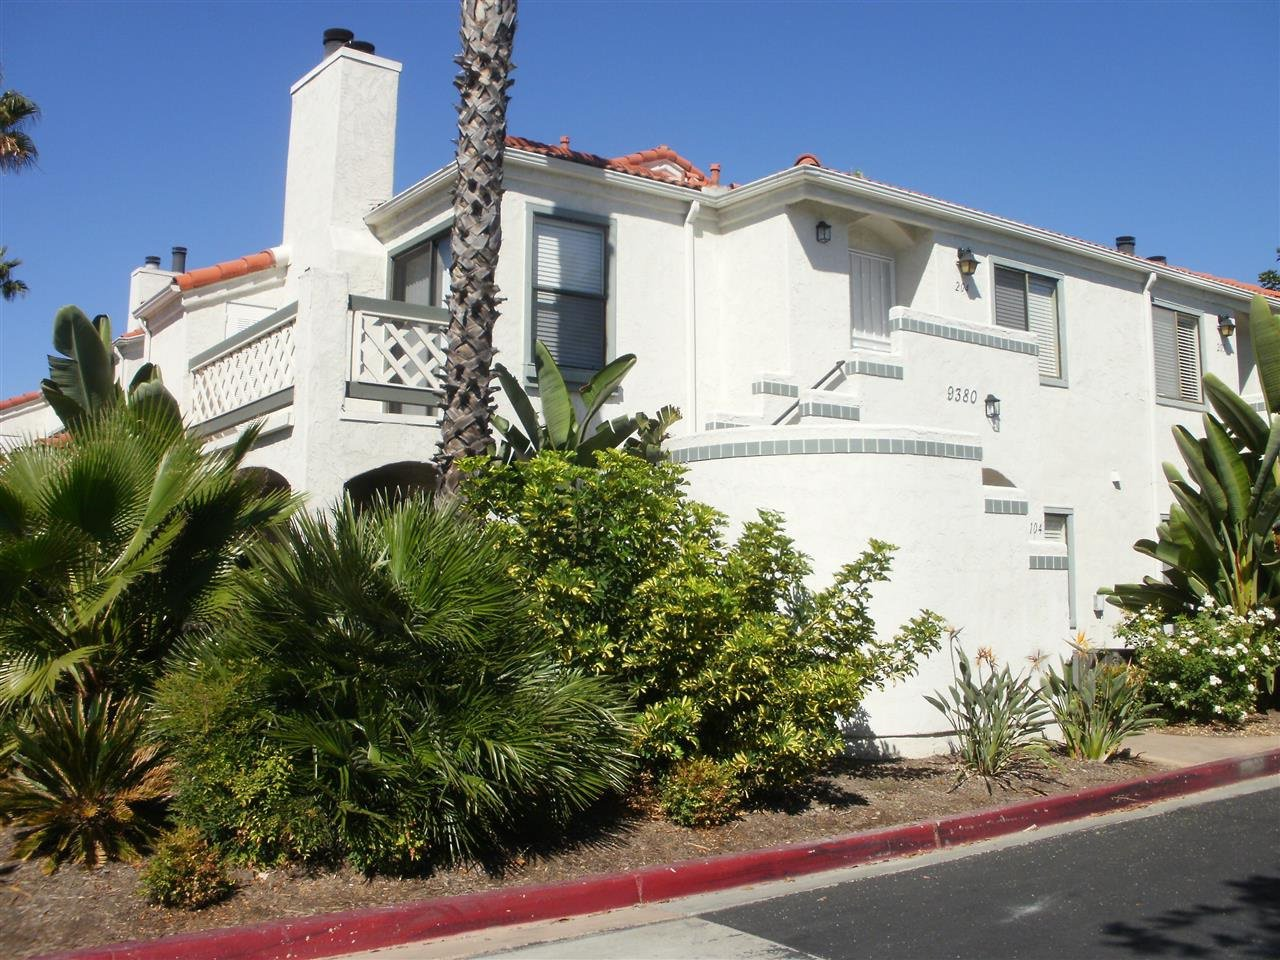 Main Photo: RANCHO PENASQUITOS Condo for sale : 3 bedrooms : 9380 Twin Trails Dr #204 in San Diego